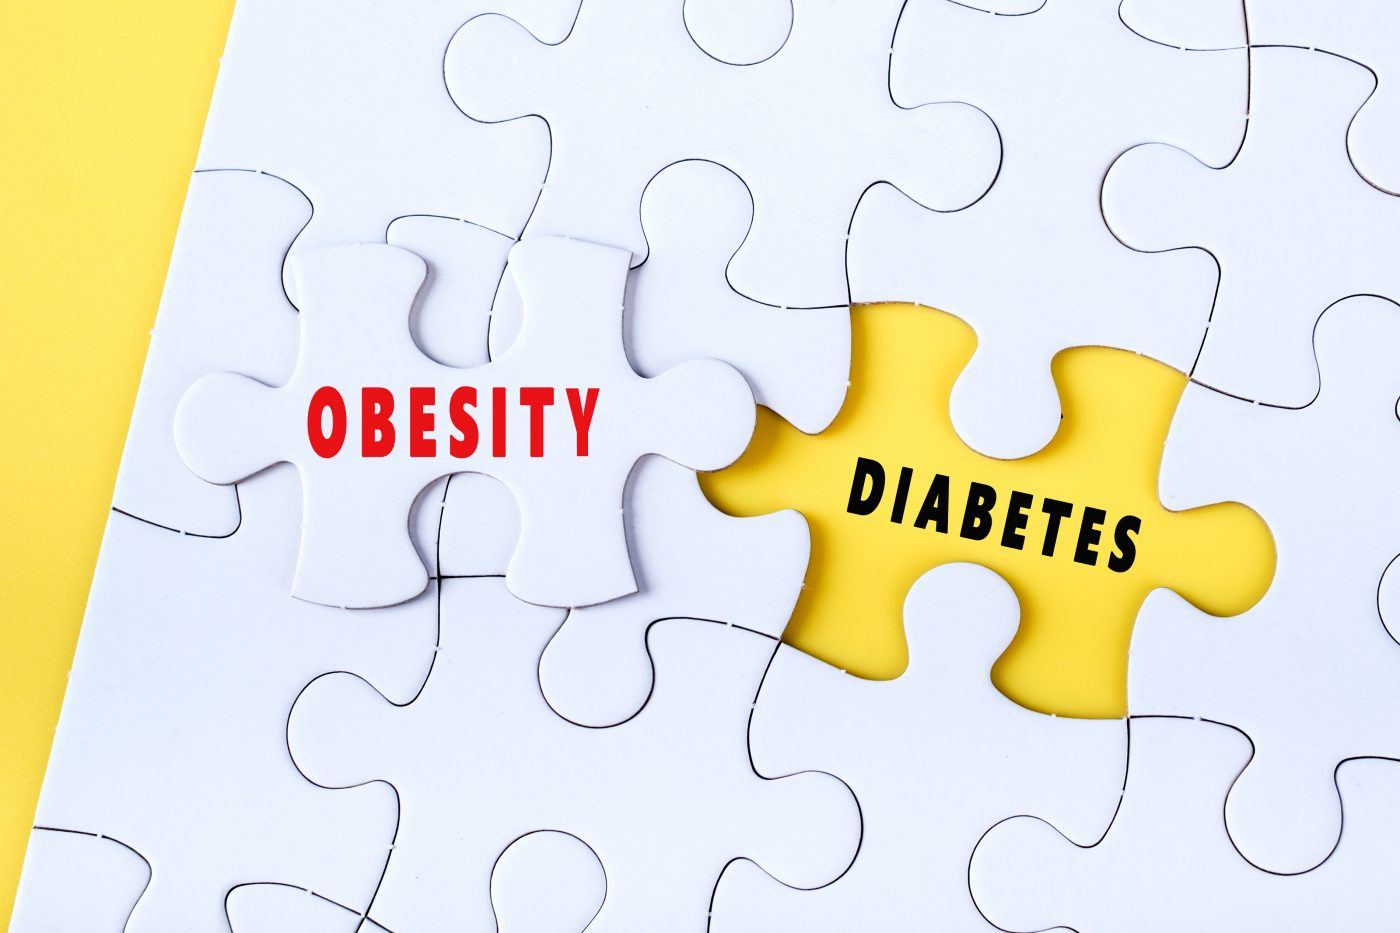 Diabetes Treated More Than Obesity Despite Links Between Two